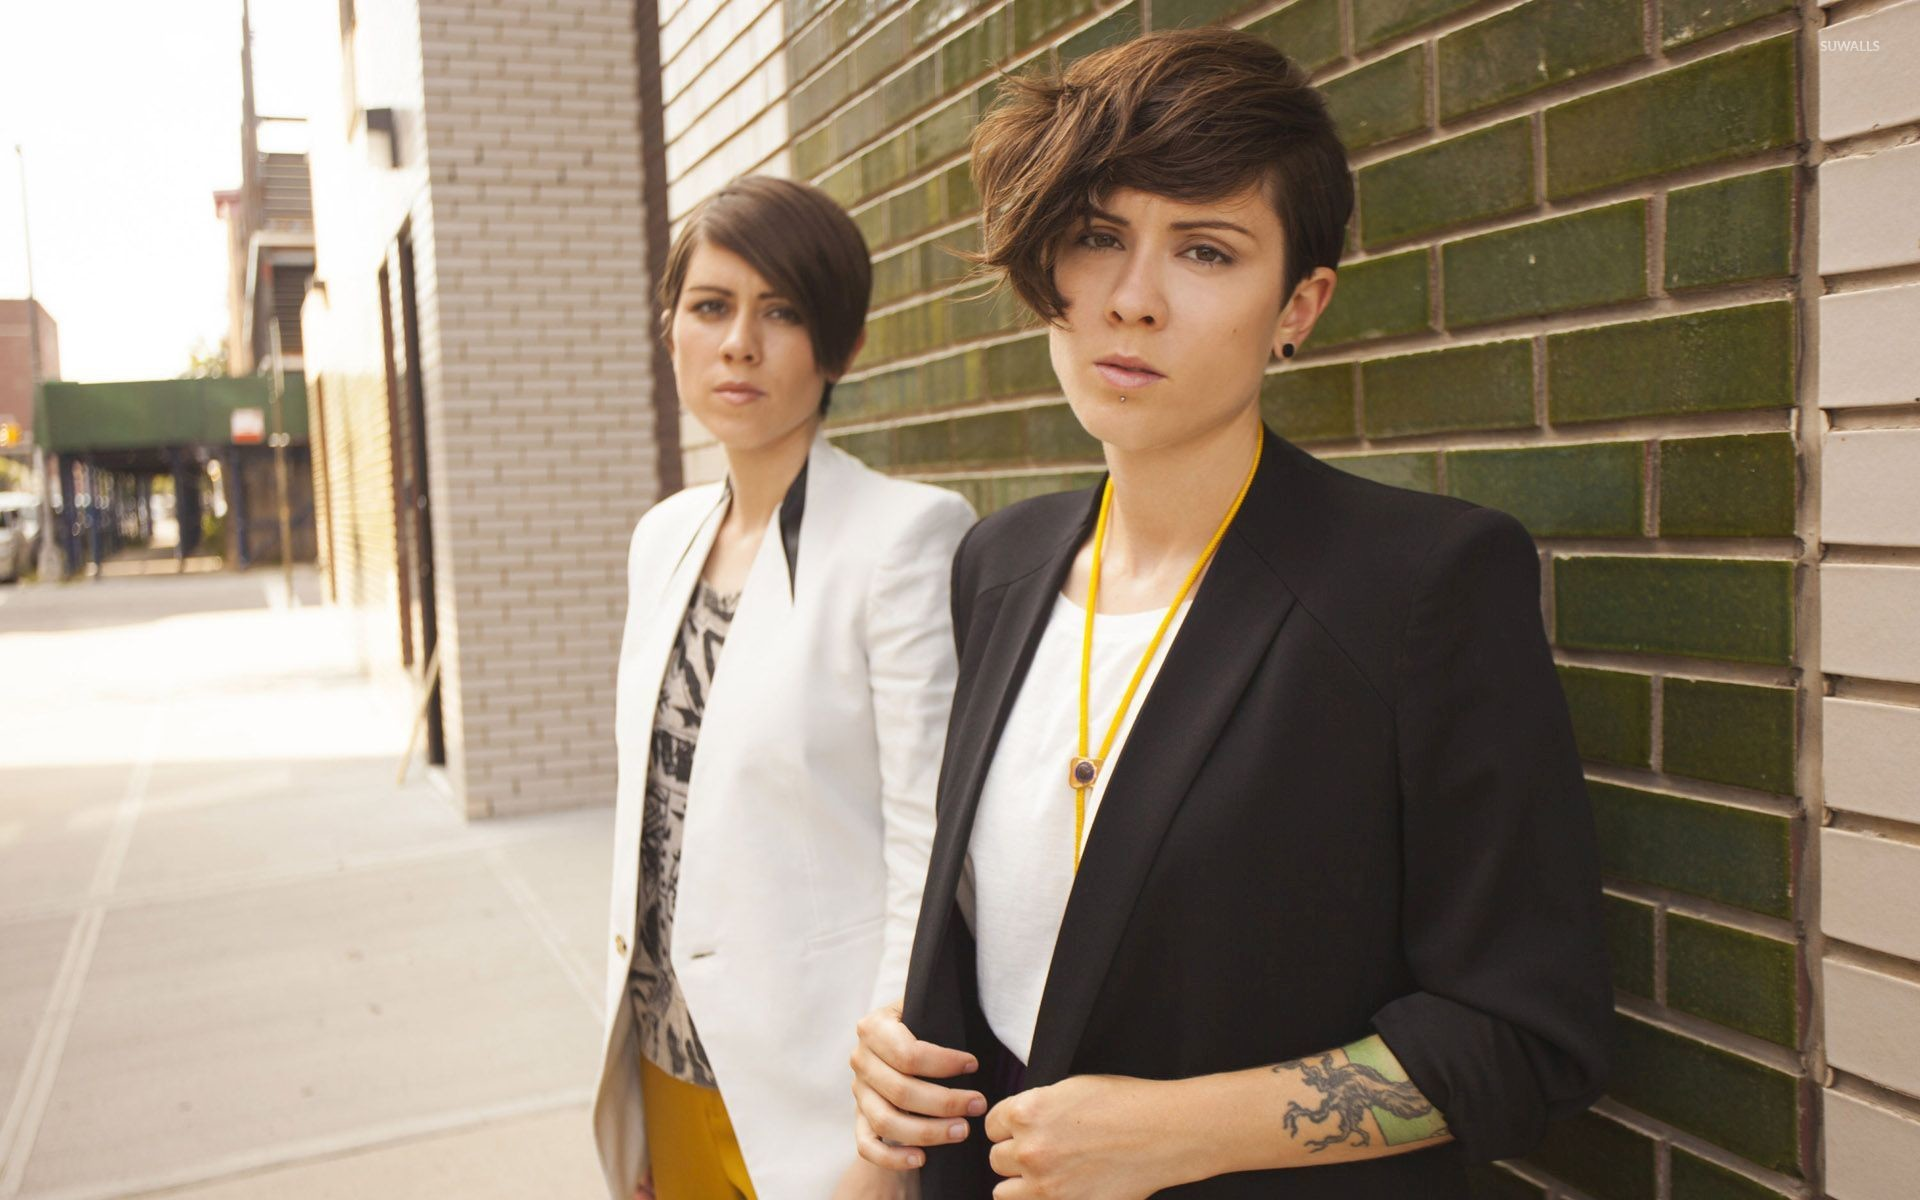 1920x1200 Tegan and Sara [9] wallpaper